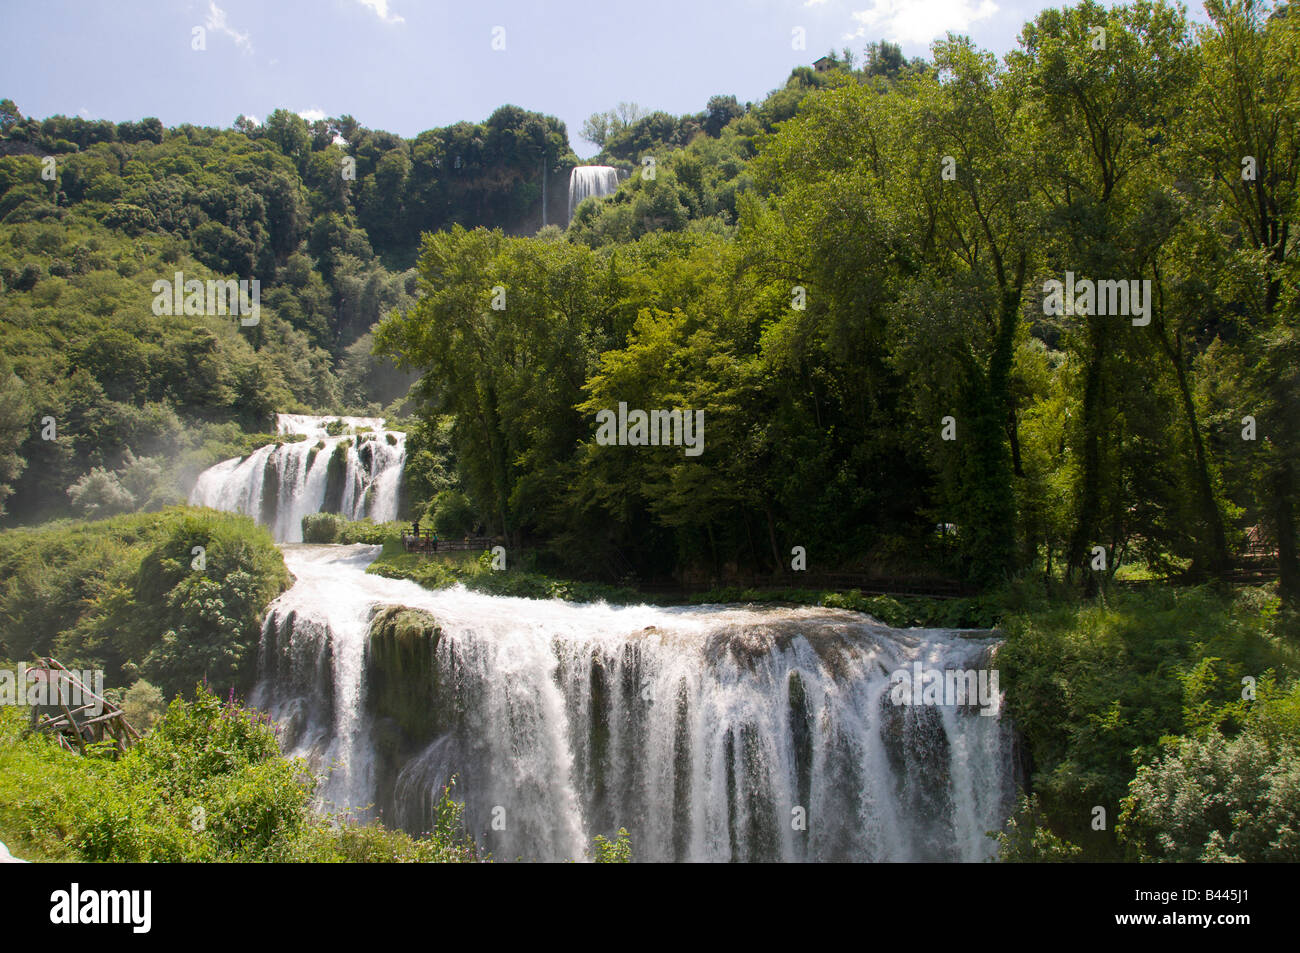 Marmore waterfall, Umbria, Italy, Europe - Stock Image